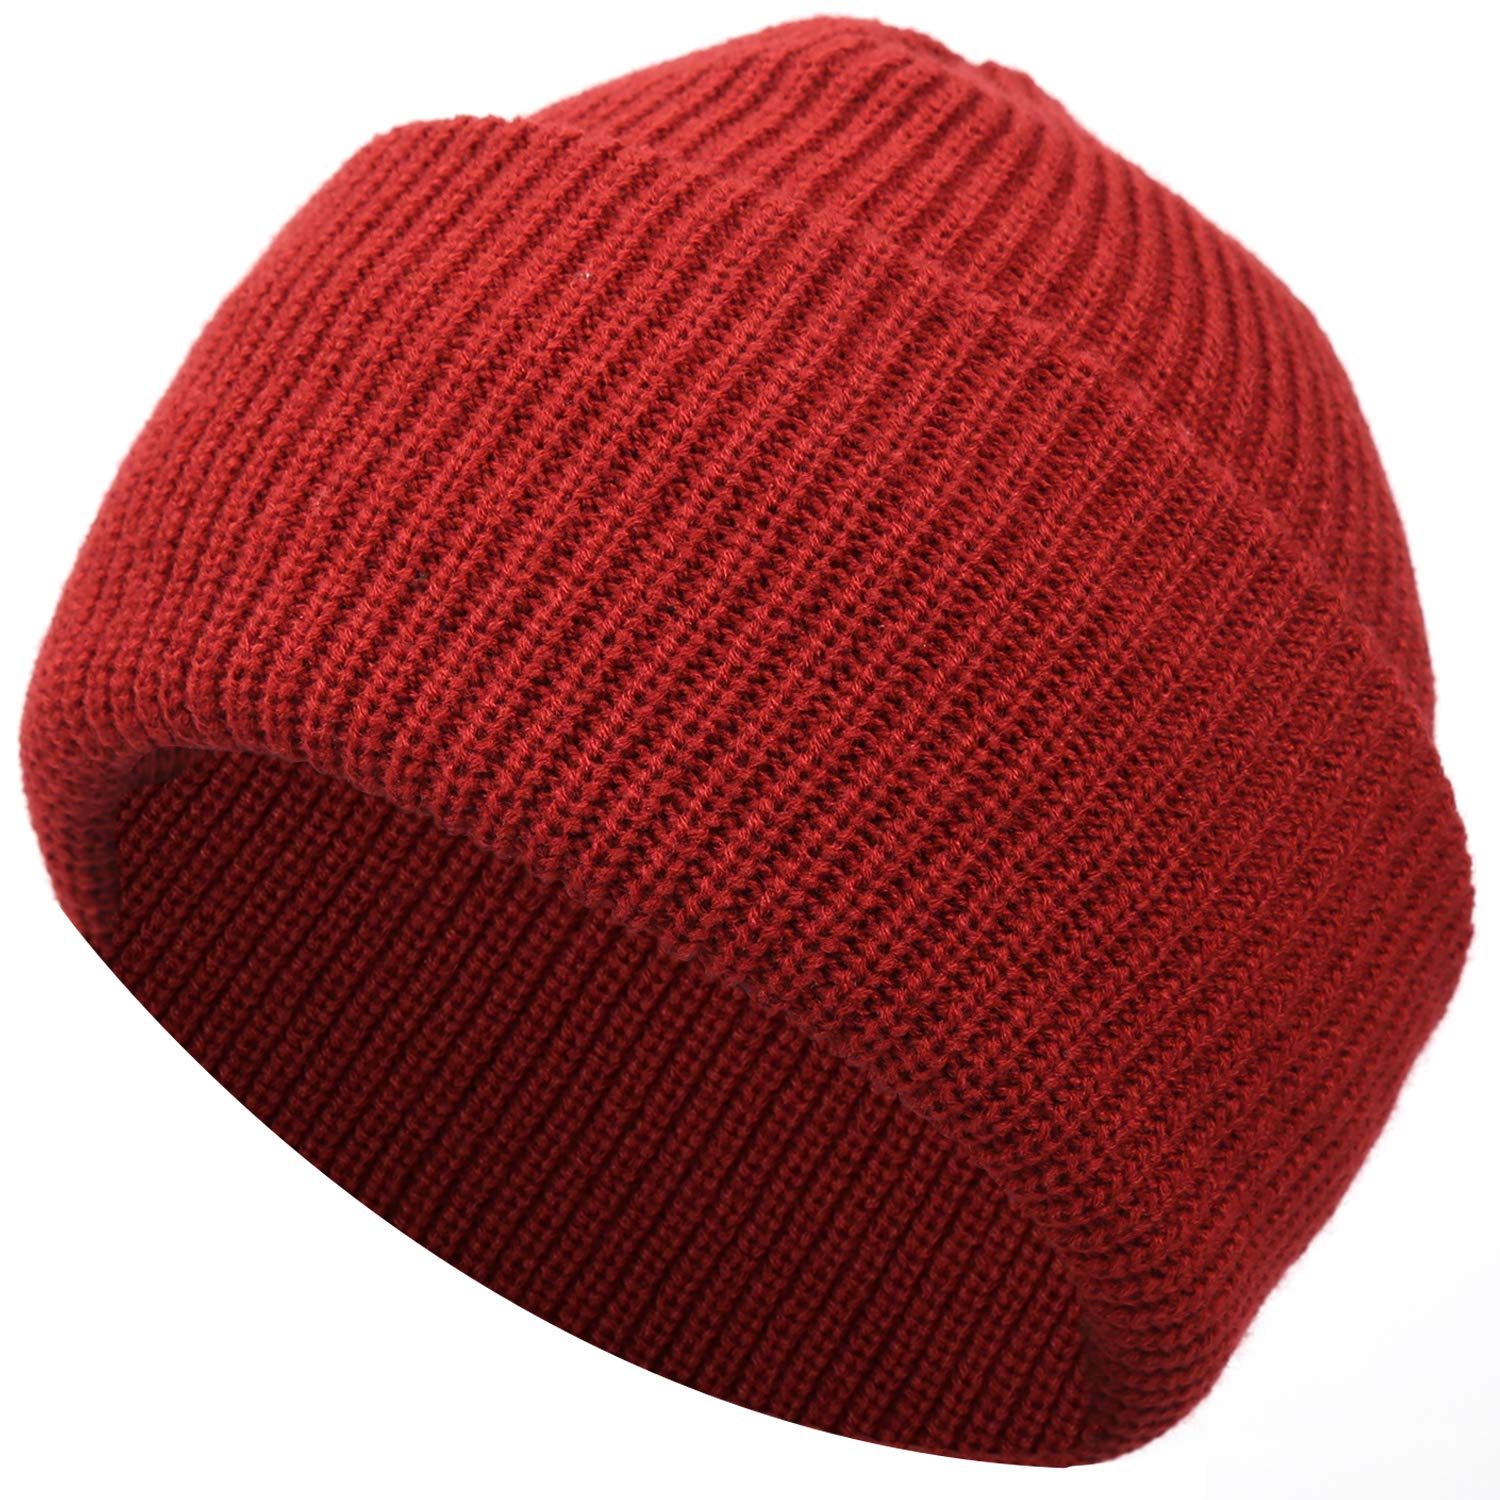 Muuttaa Winter Warm Soft Folded Brim Knitted Beanie Hat for Men and Women